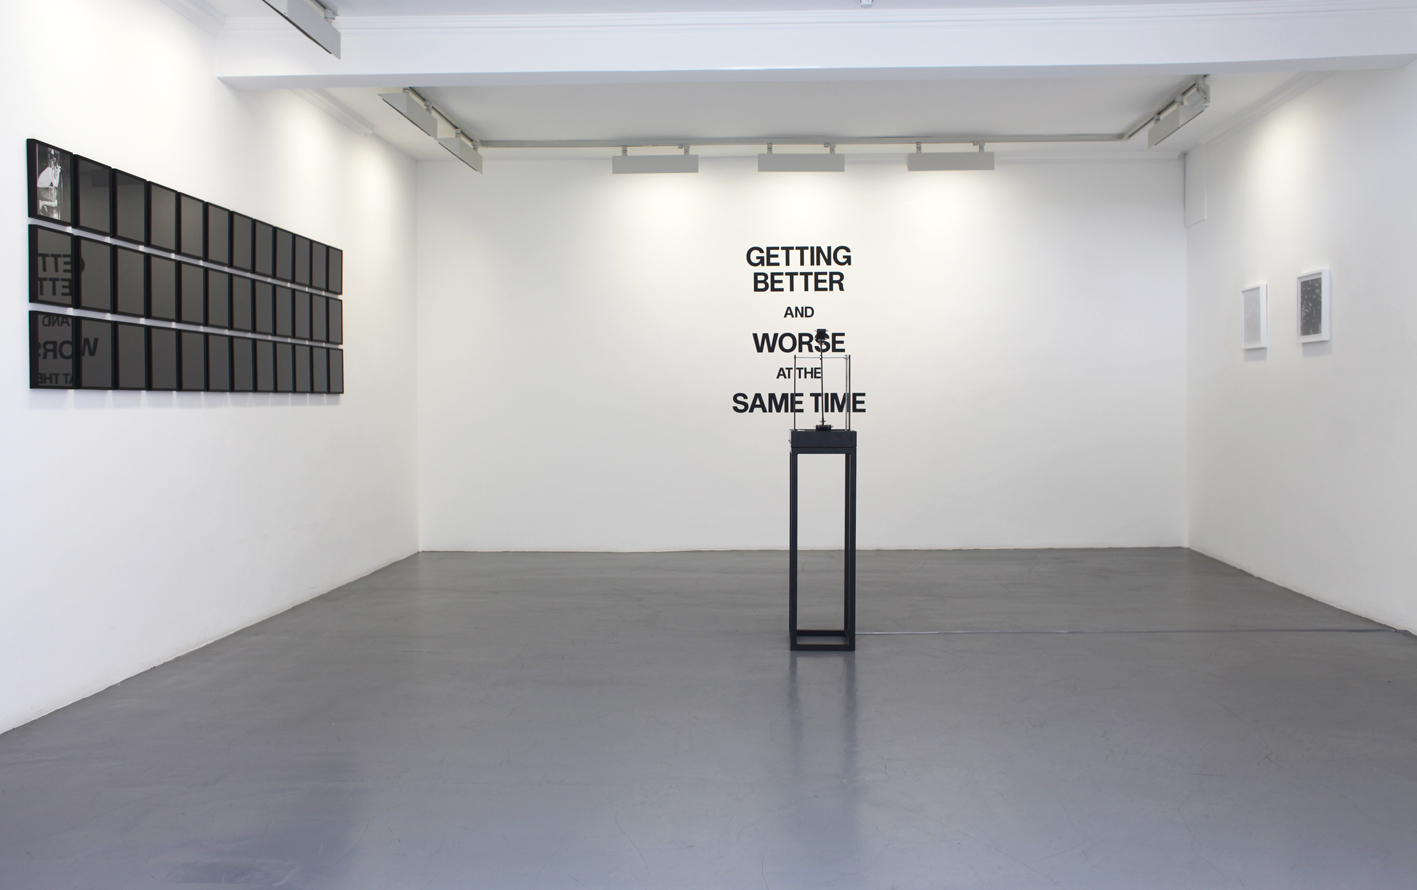 Exhibition view of Getting Better and Worse at The Same Time (room 1), 2015